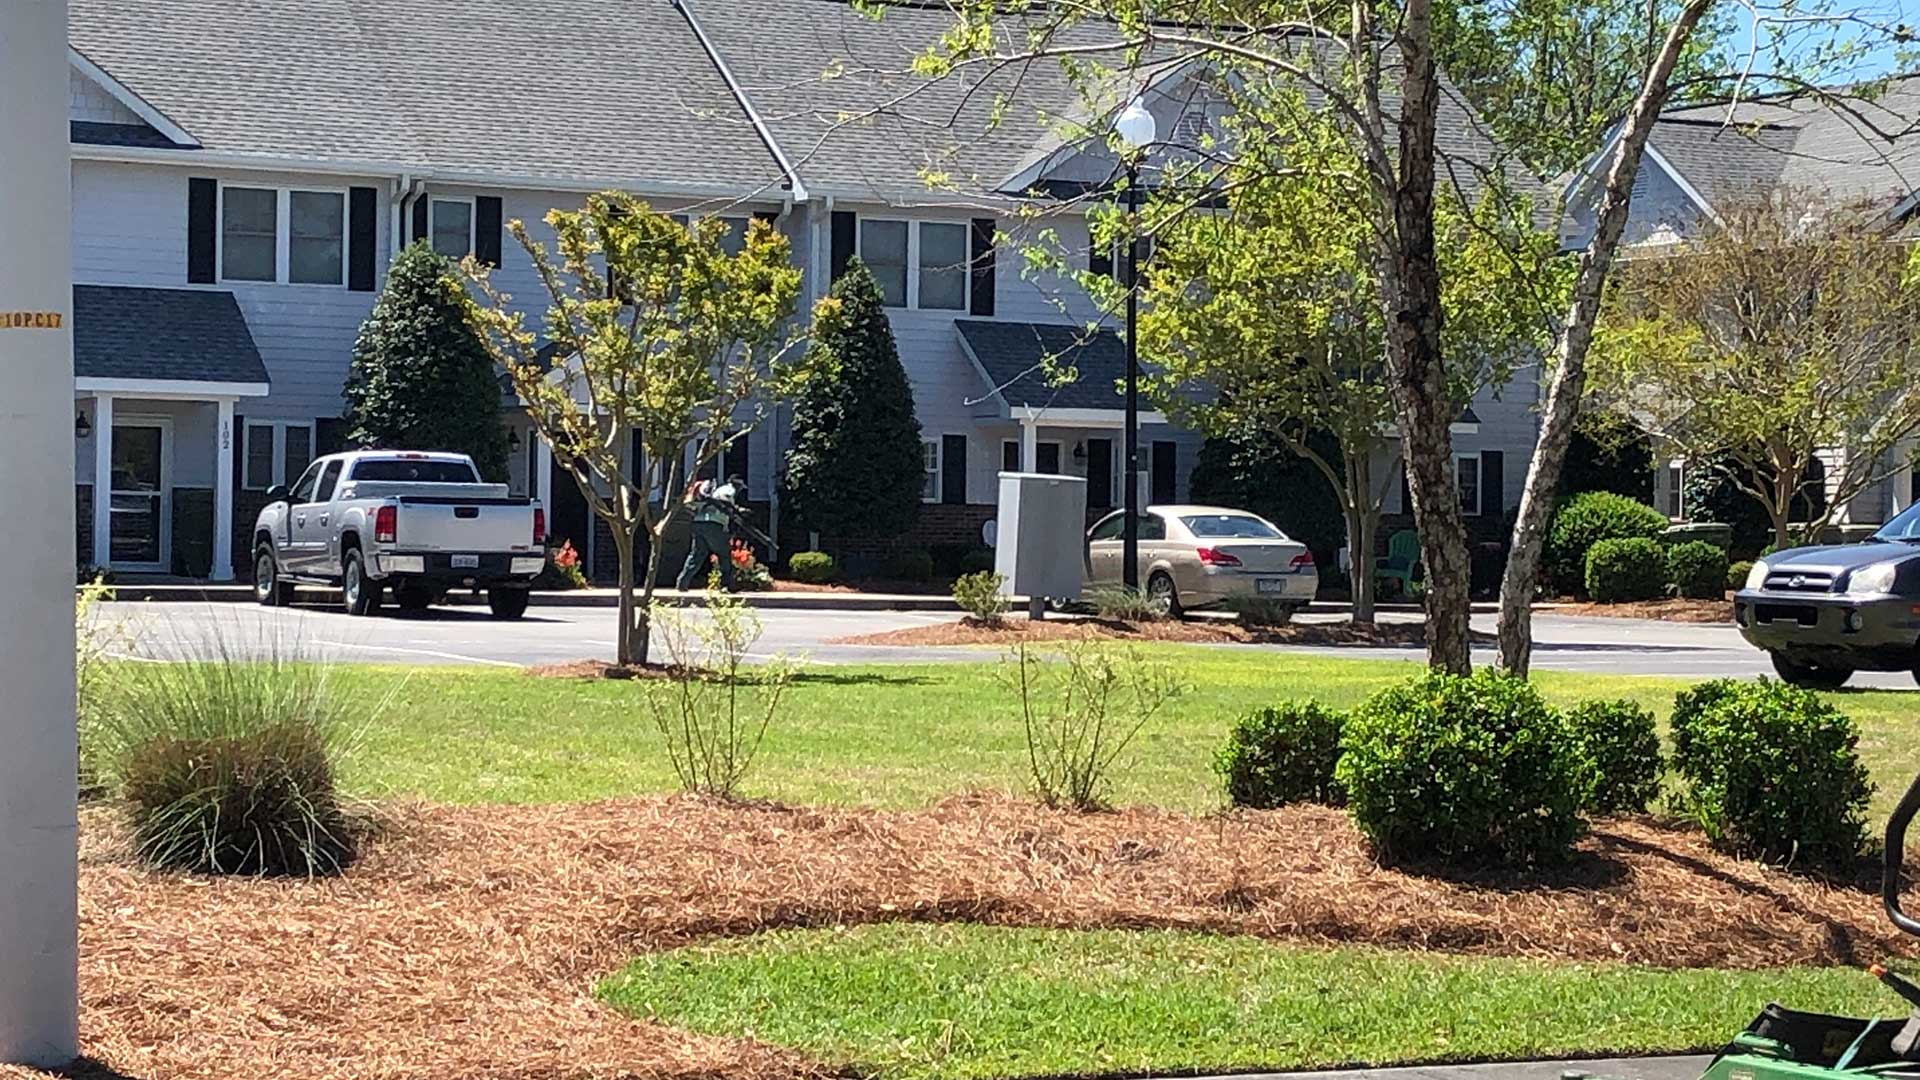 Landscape maintained for a condo community in Morehead City, NC.